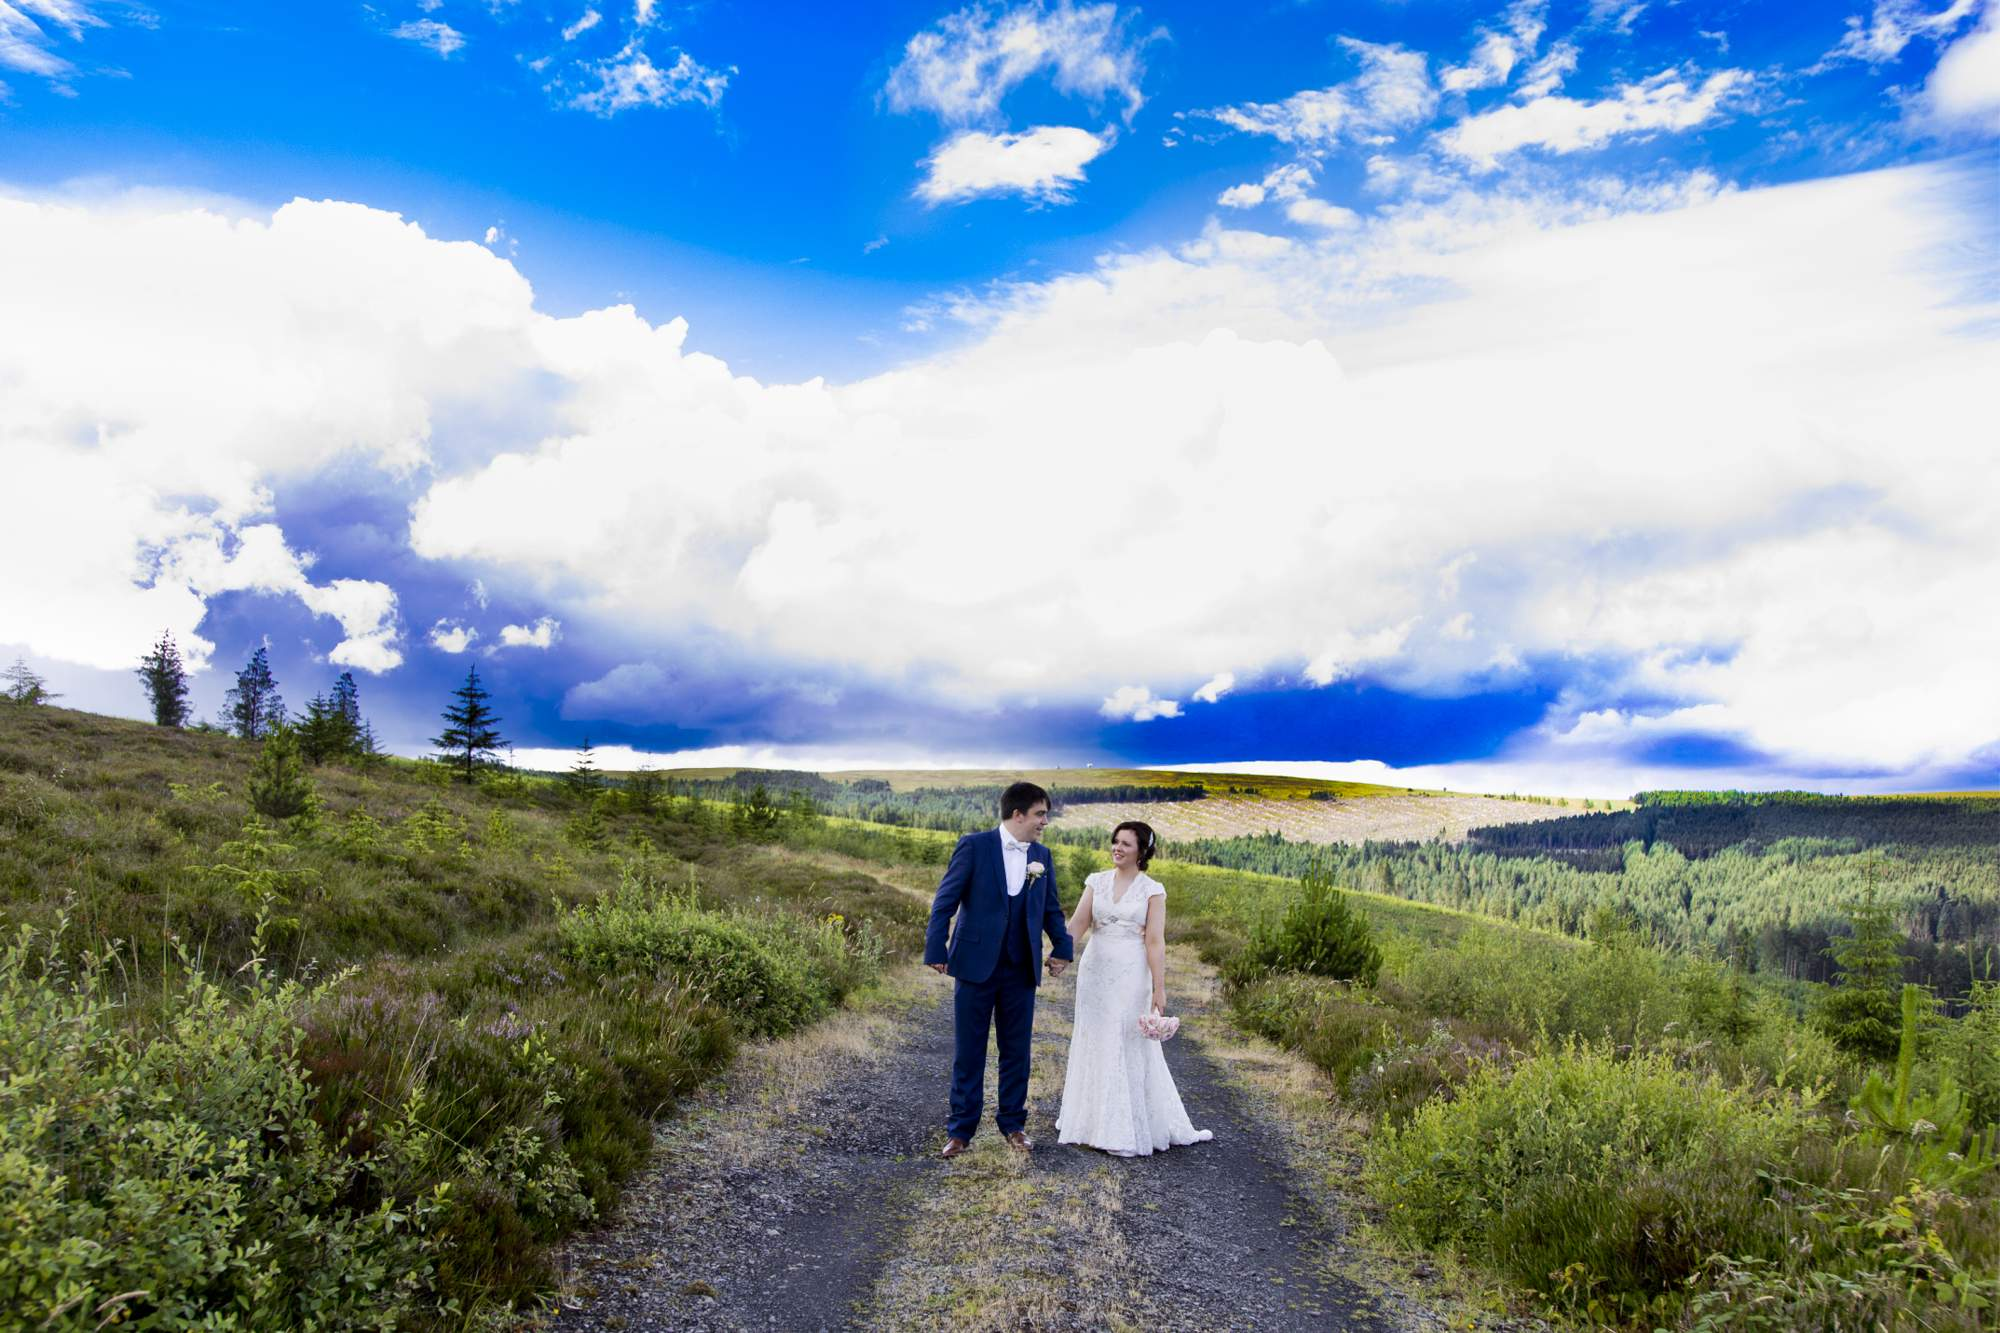 Wedding Photographer Carlow, Call 0861946237,  Wedding Photography Tullow, by Aoileann Nic Dhonnacha, Ireland